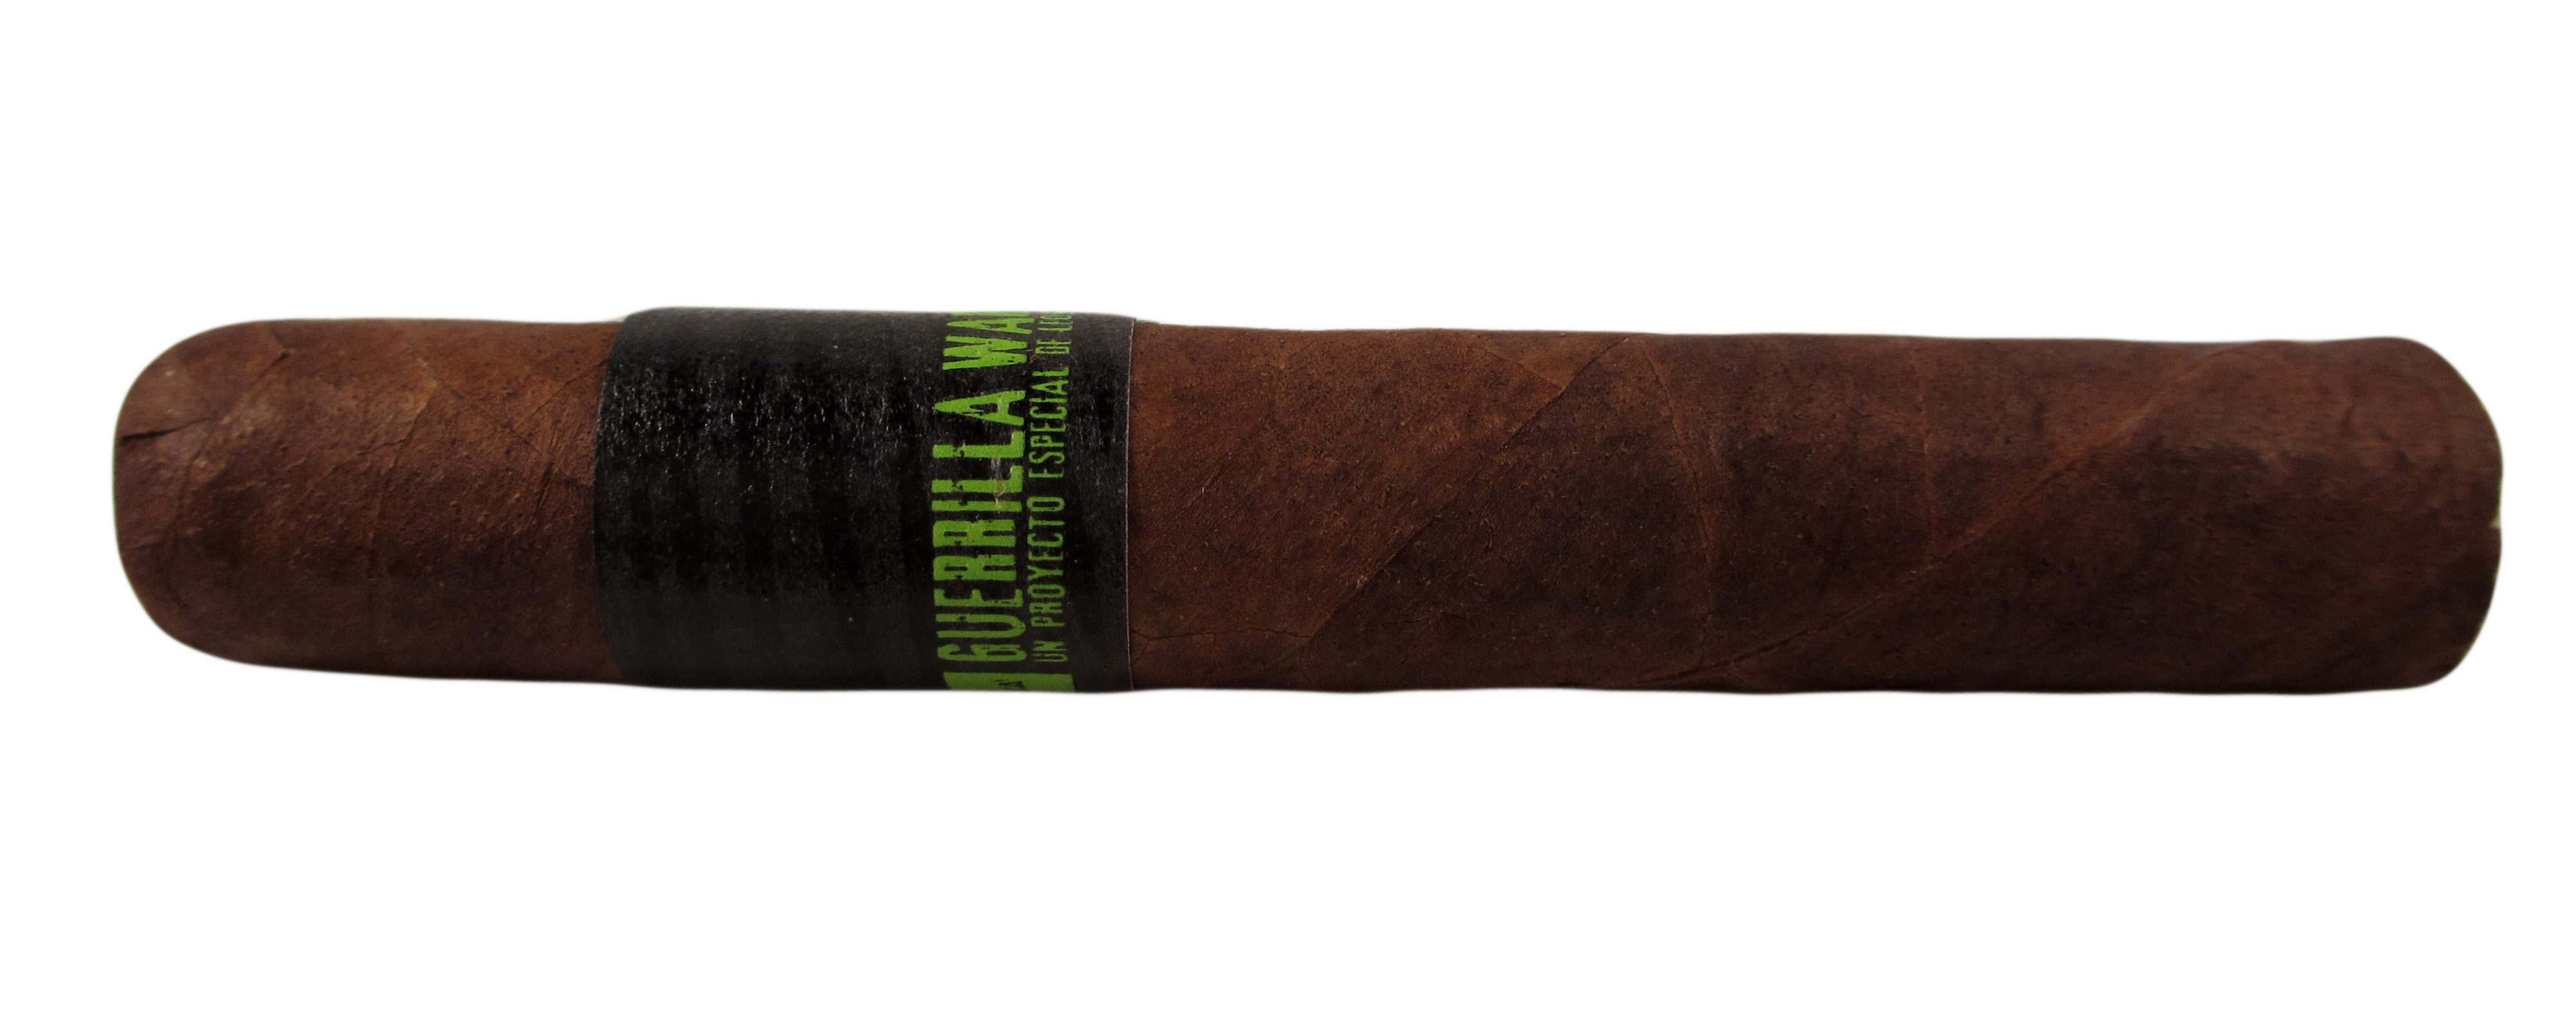 Blind Cigar Review: Viva Republica | Guerrilla Warfare Petit Corona